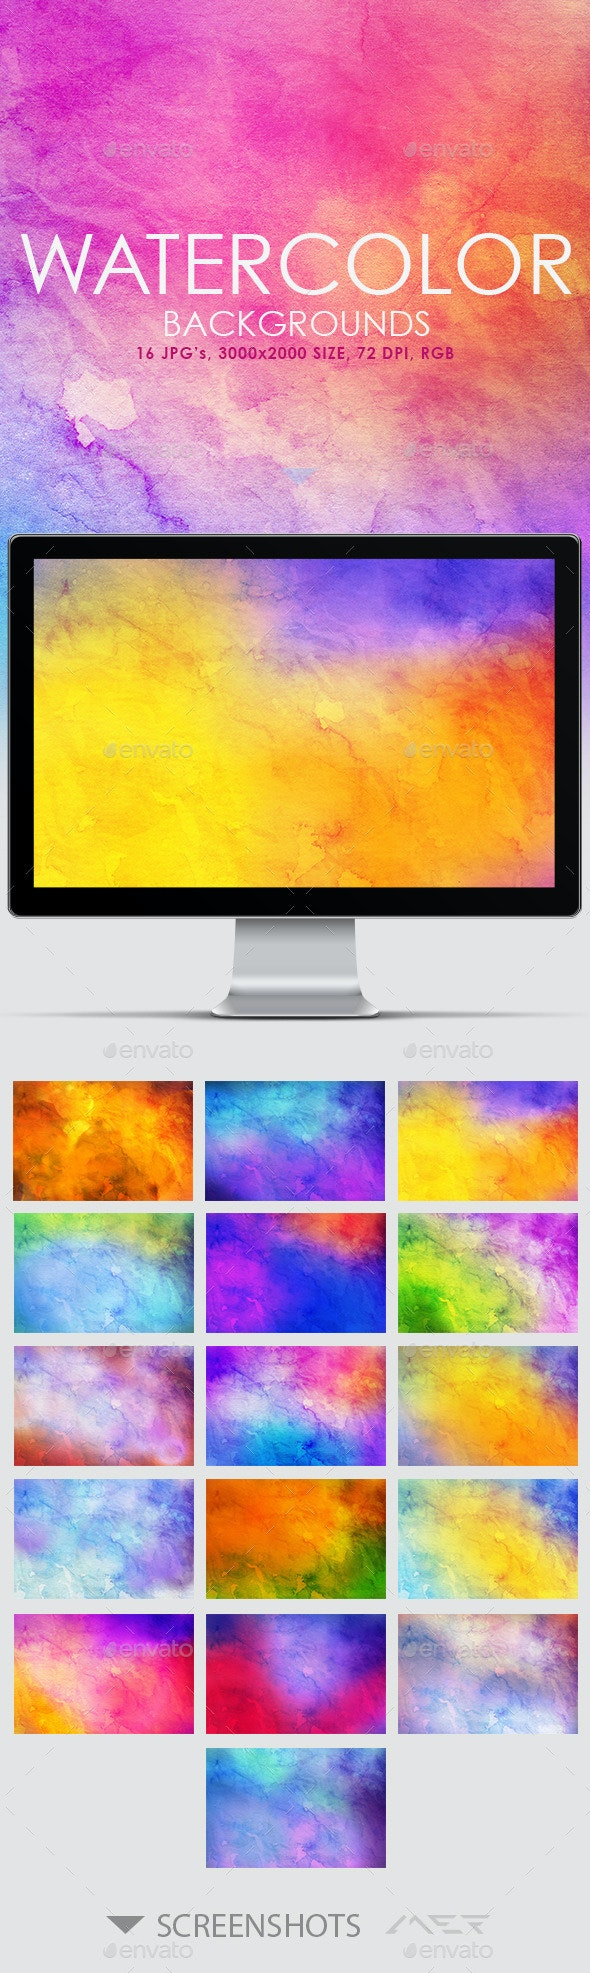 16 Watercolor Backgrounds  - Abstract Backgrounds